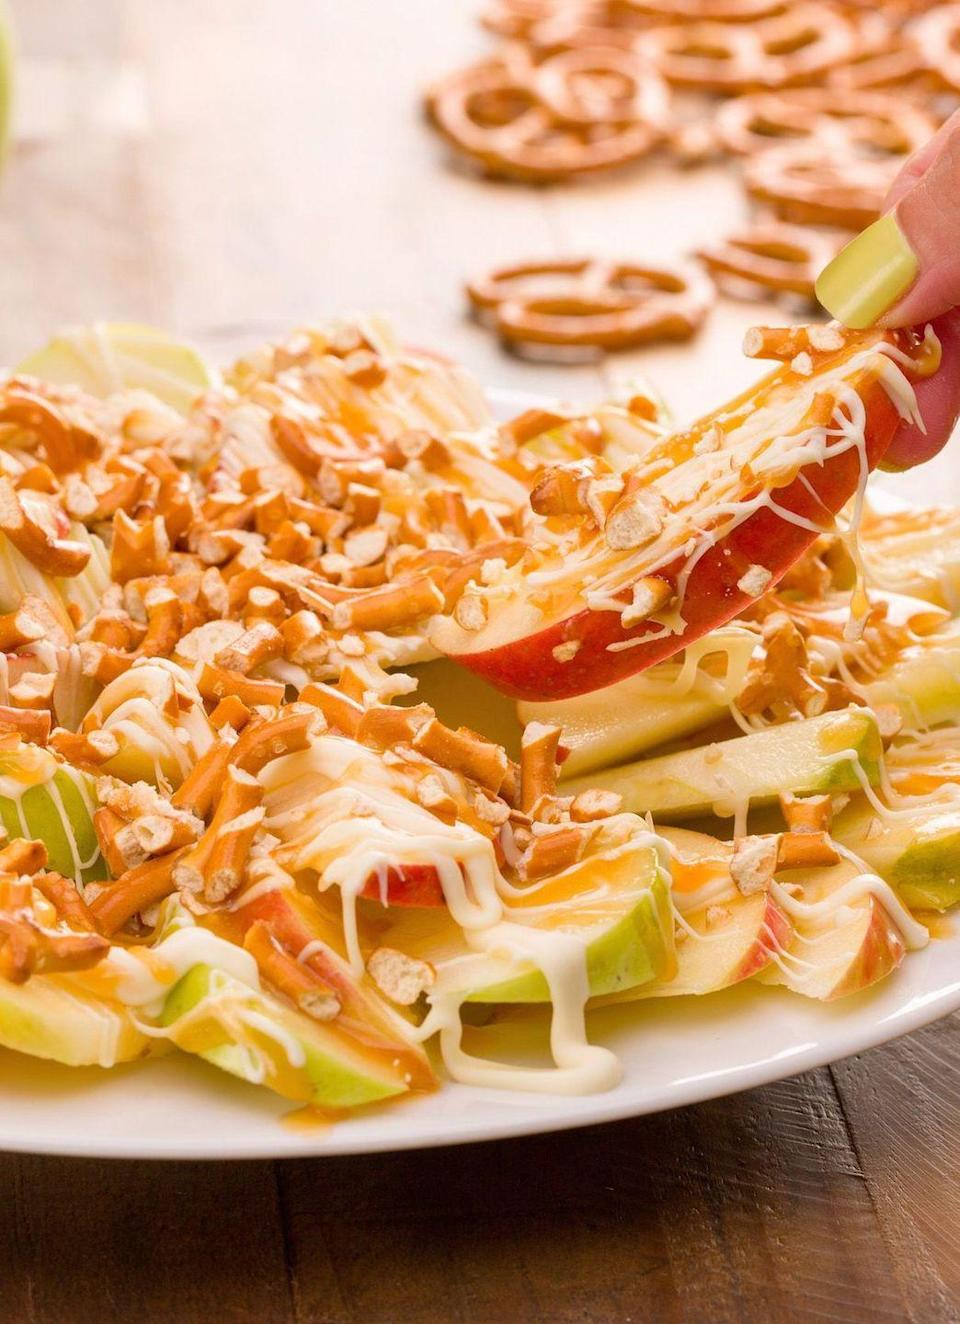 "<p>Not only as these healthier than pie, but they are also way easier to make.</p><p>Get the recipe from <a href=""https://www.delish.com/cooking/recipe-ideas/recipes/a43818/apple-nachos-recipe/"" rel=""nofollow noopener"" target=""_blank"" data-ylk=""slk:Delish"" class=""link rapid-noclick-resp"">Delish</a>. </p>"